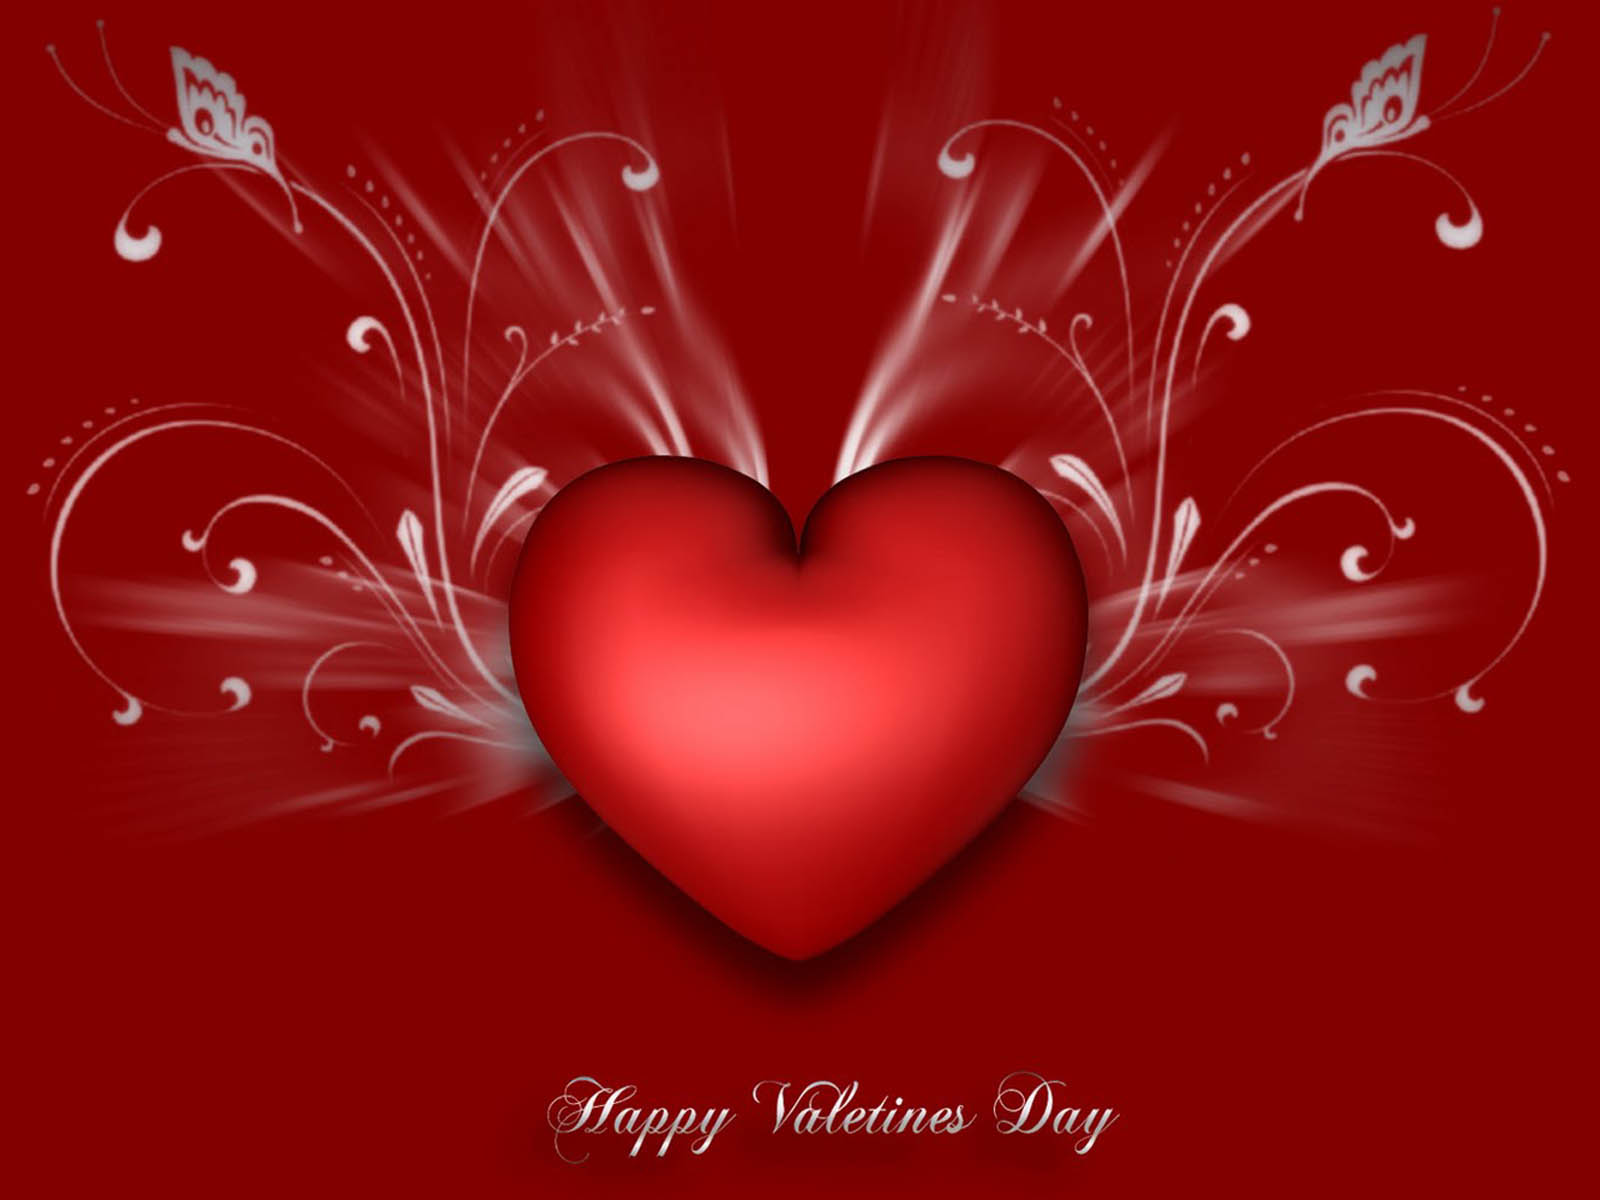 Wallpapers valentines day wallpapers 2013 - Valentines day background wallpaper ...